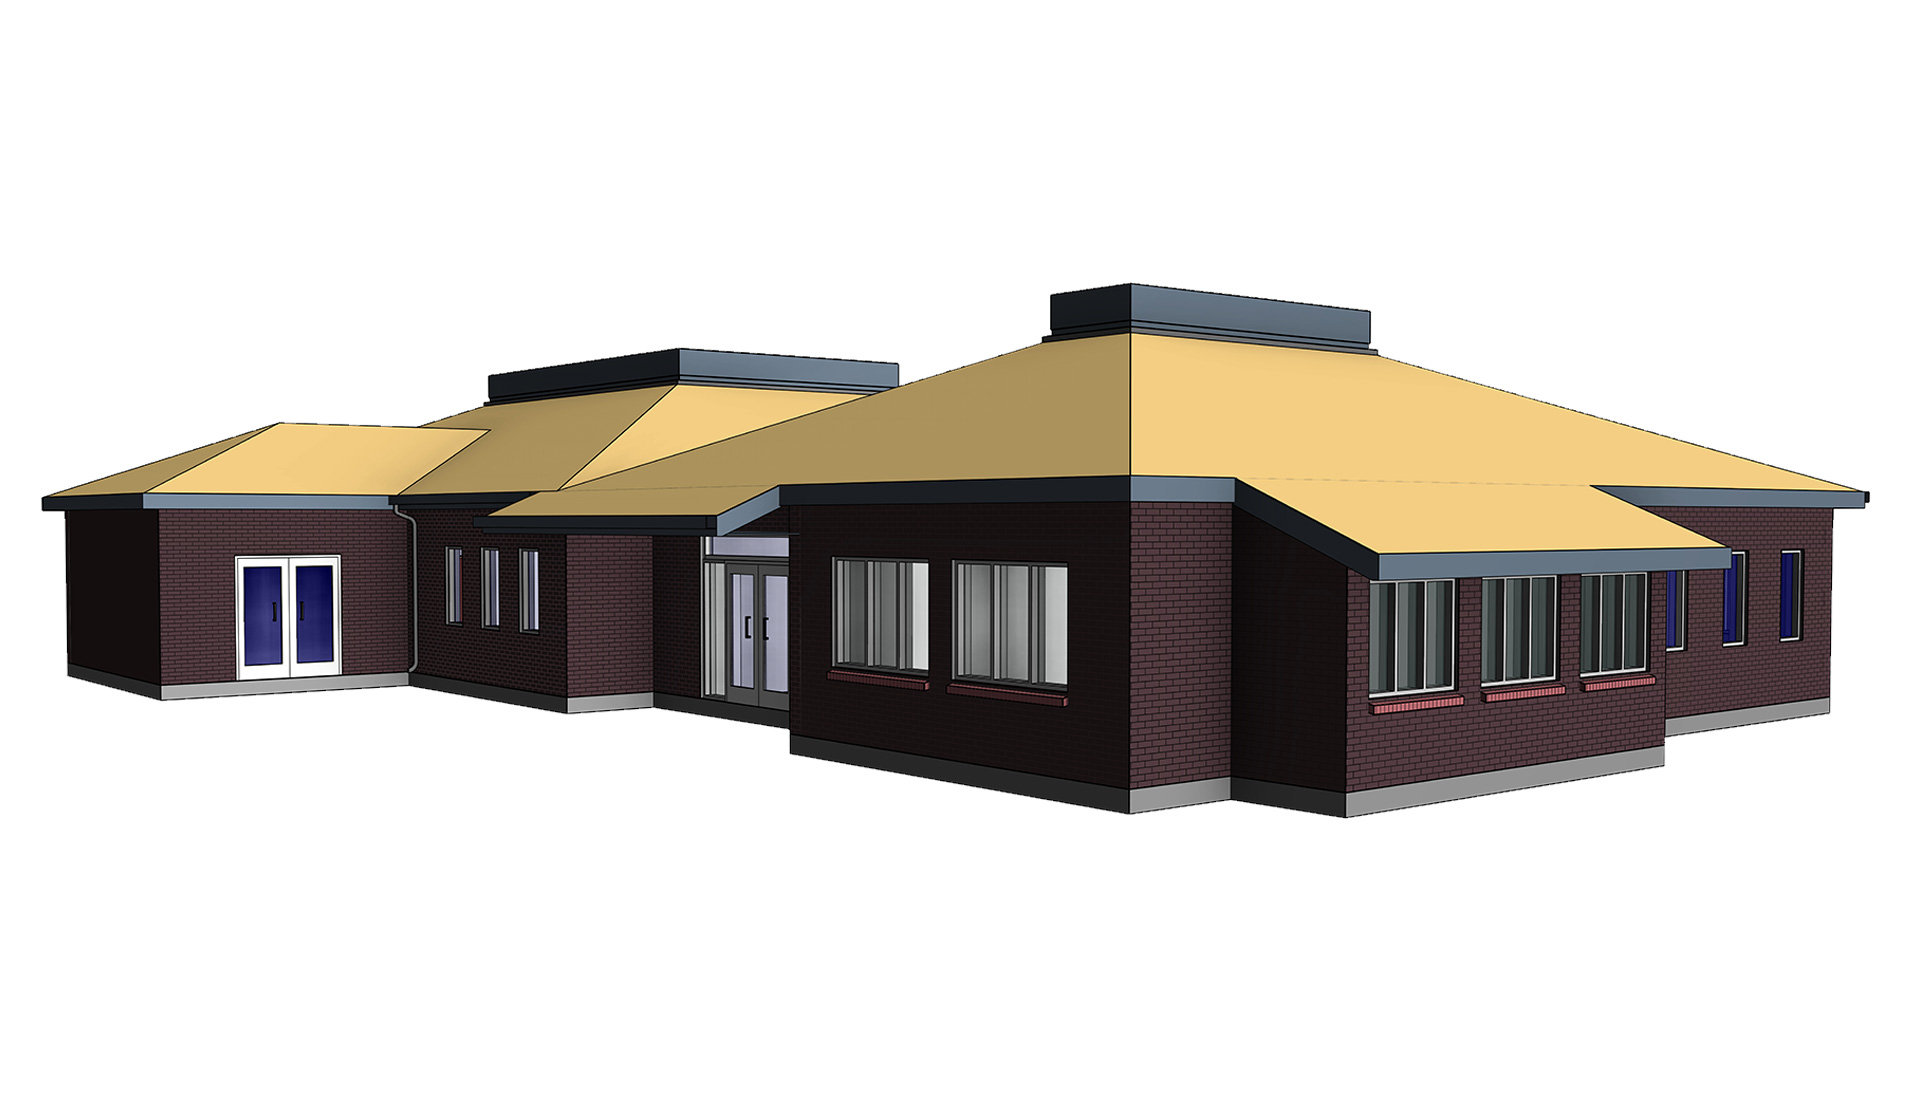 Architectural_Revit_Modeling_Birken_Inspection_Lab_Commercial_Project_by_United-BIM